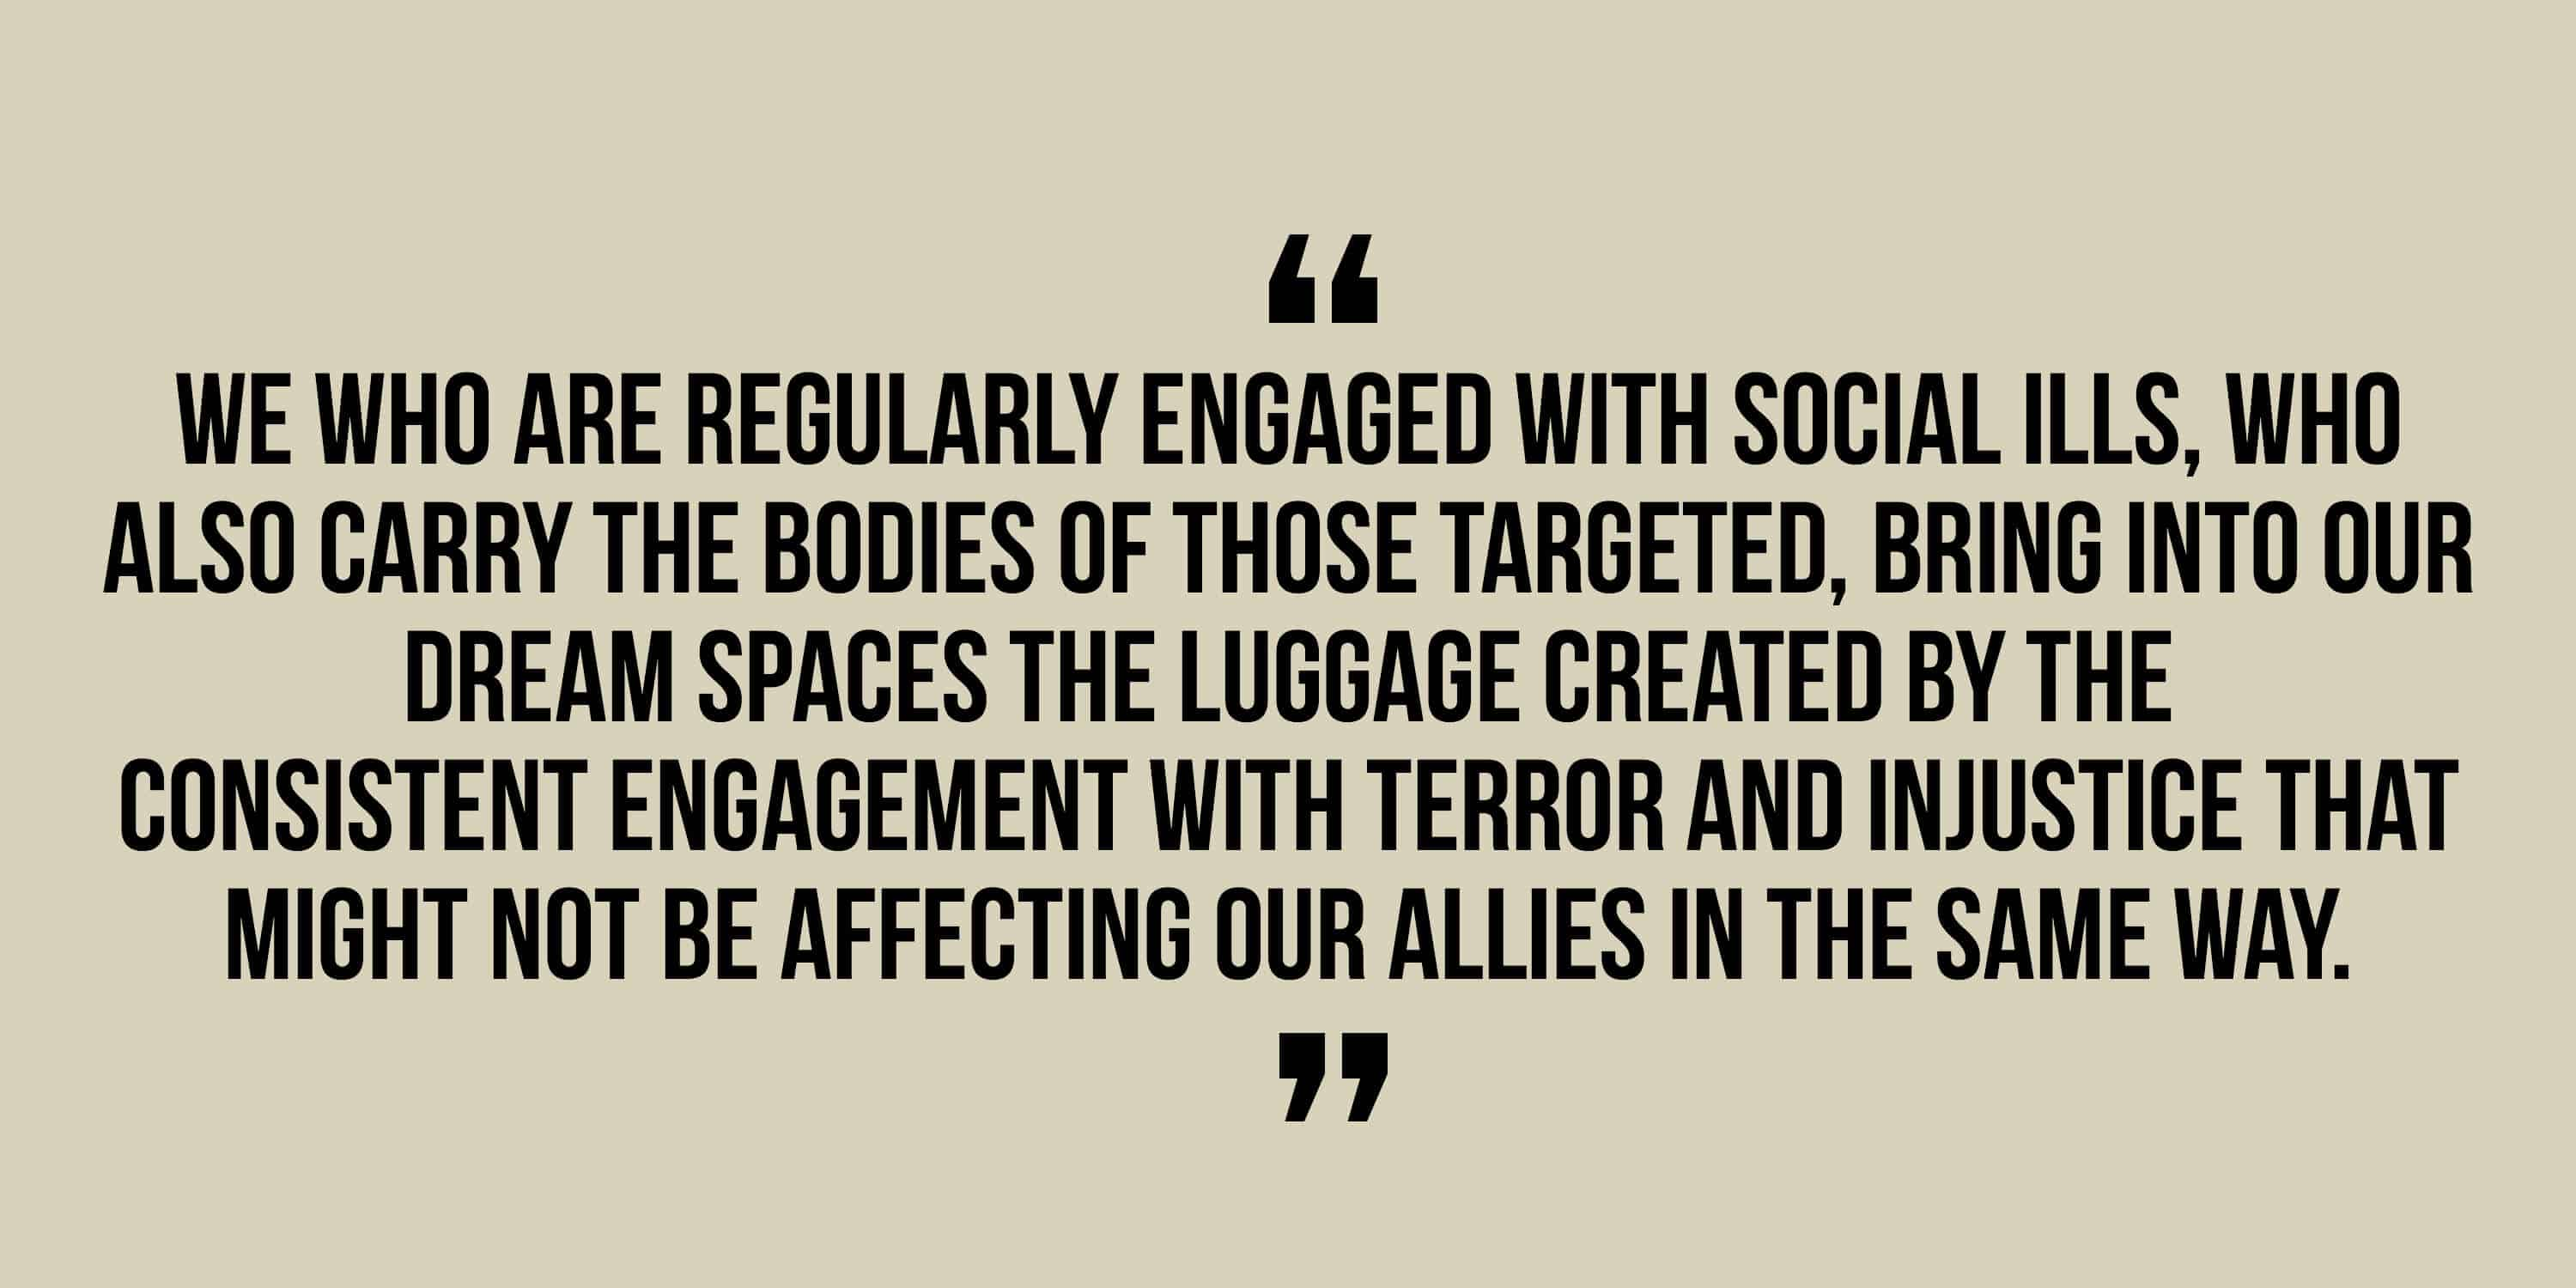 we are regularly engaged with social ills